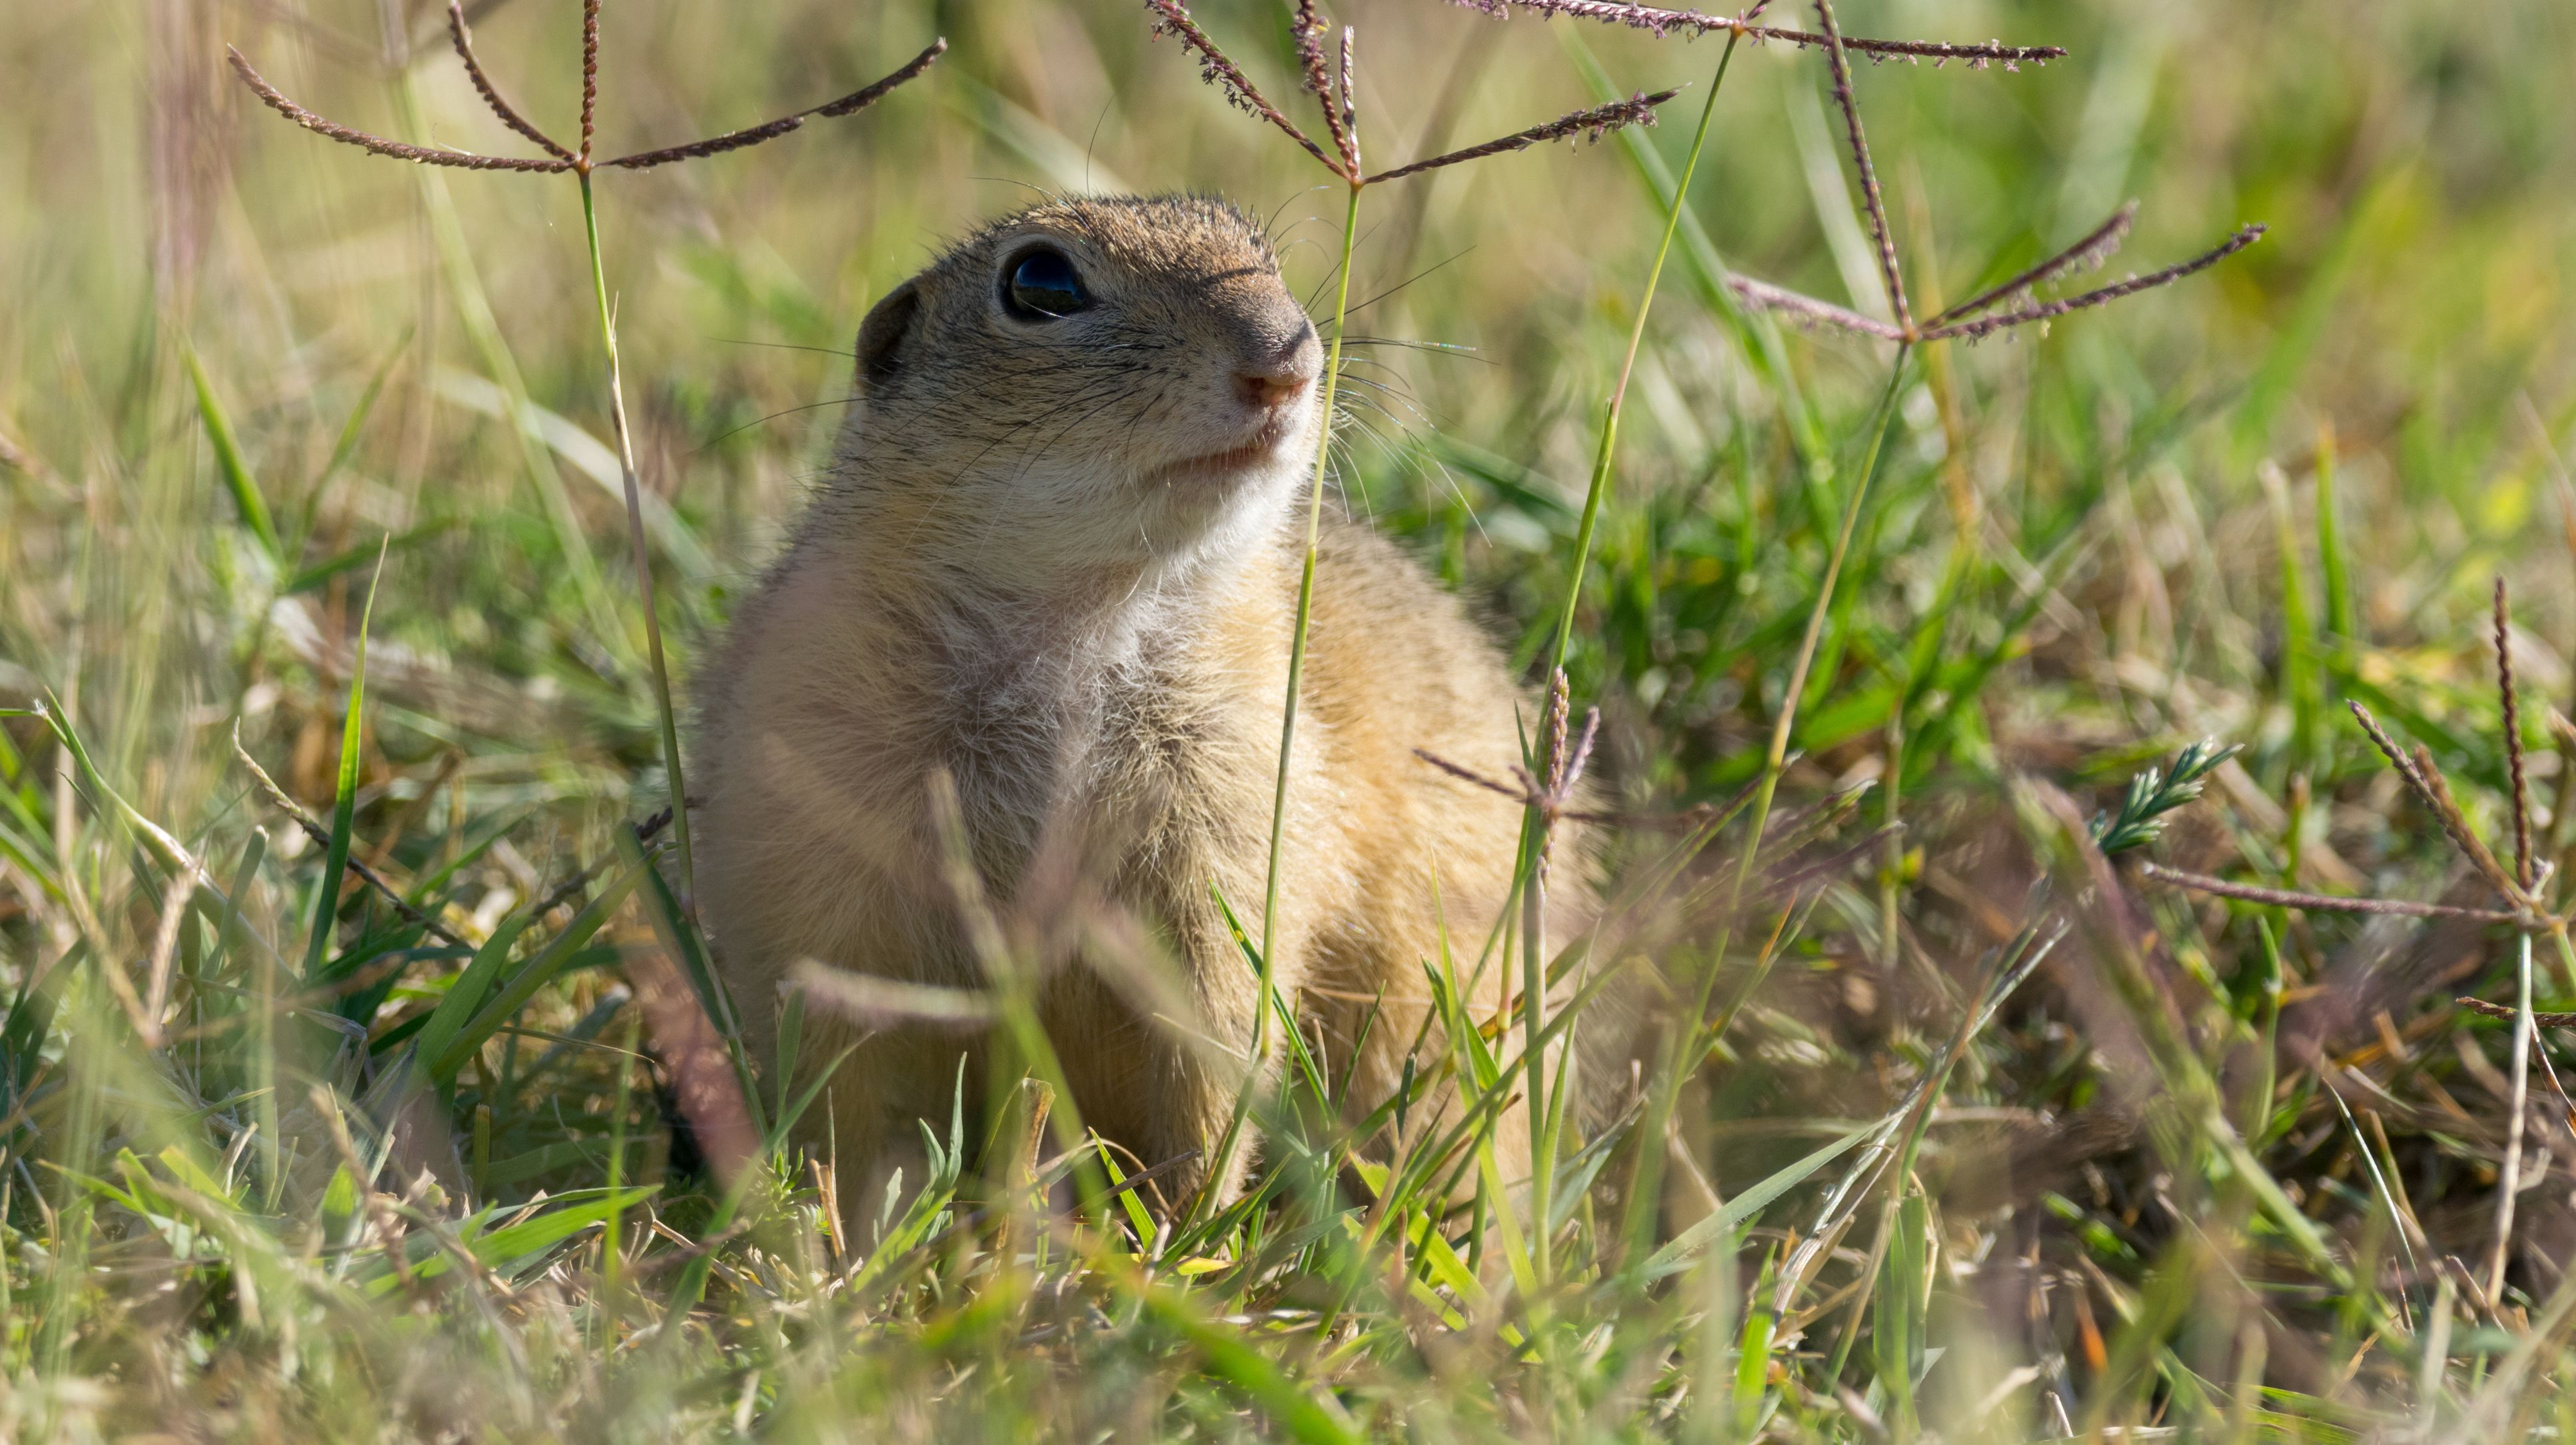 What's The Difference Between Gophers And Groundhogs